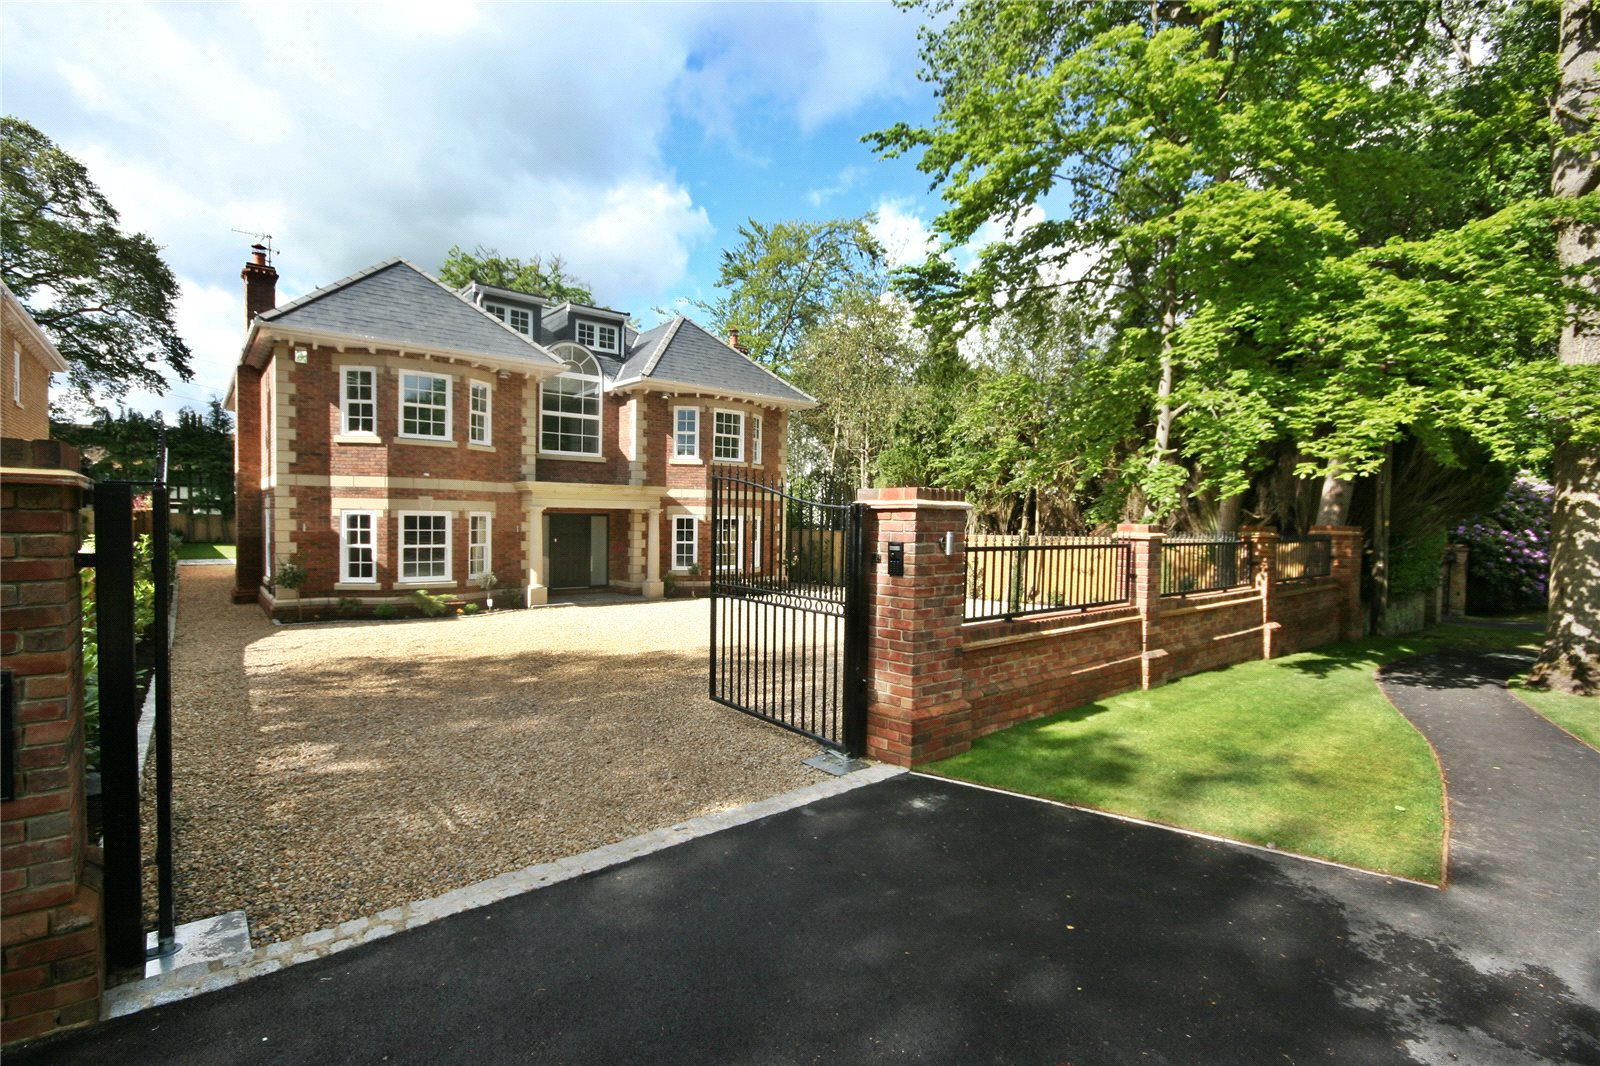 独户住宅 为 销售 在 Fulmer Drive, Gerrards Cross, Buckinghamshire, SL9 Gerrards Cross, 英格兰